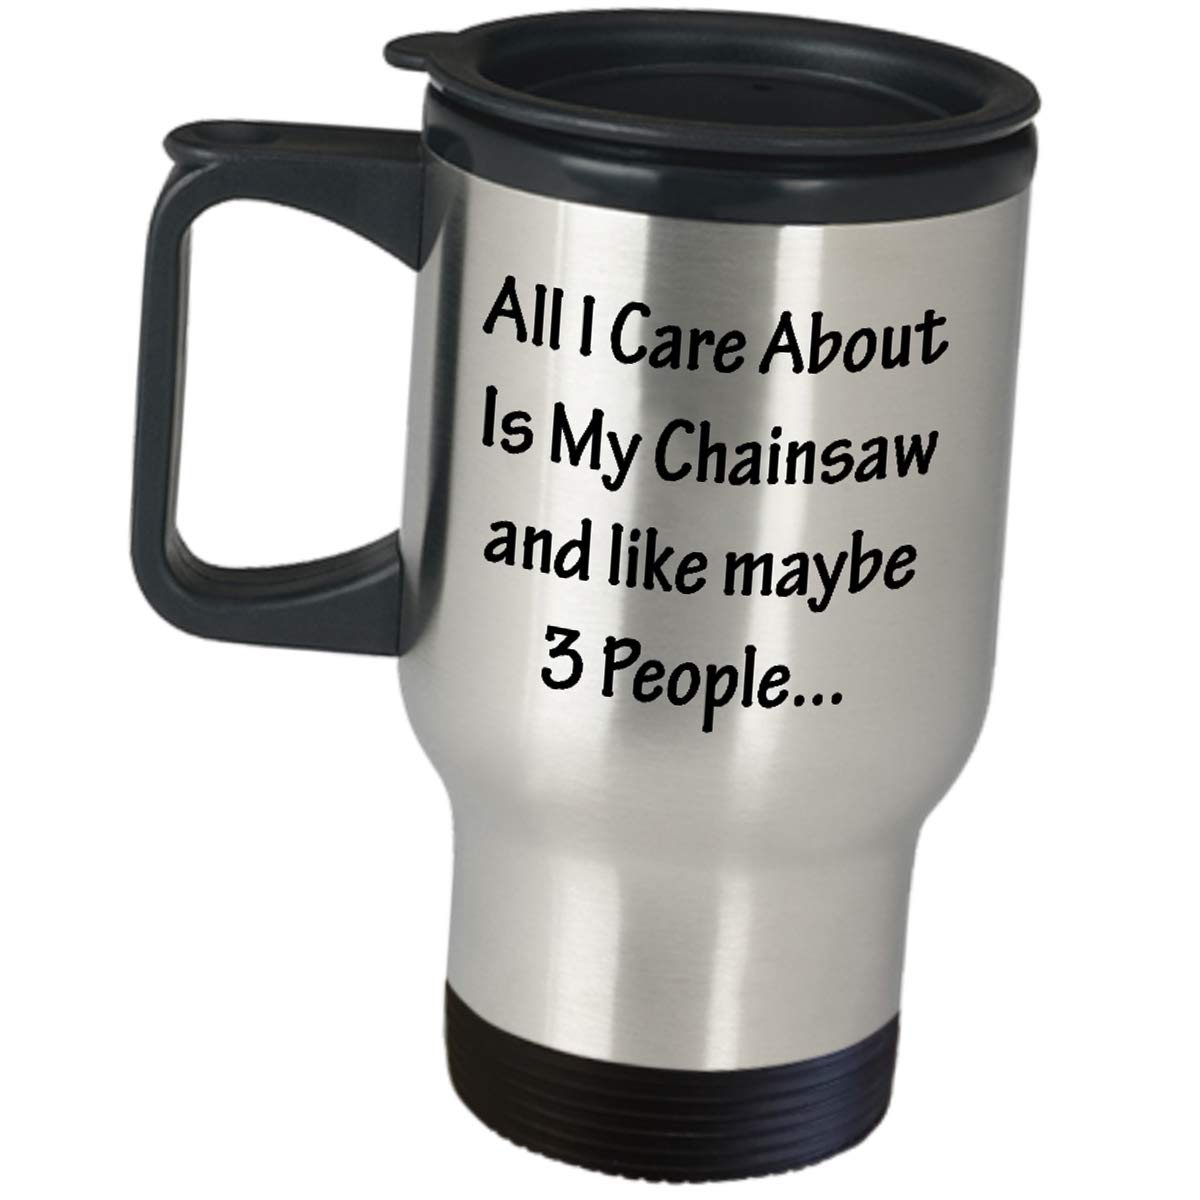 Coffee Tumbler Appreciation Gifts for Logger - All I Care About Is My Chainsaw - Travel Mug Trucker Logging Wood Truck Lumberjack Cool Timber Cutter Lumberjill Catty River Hog Tree Log Men Women